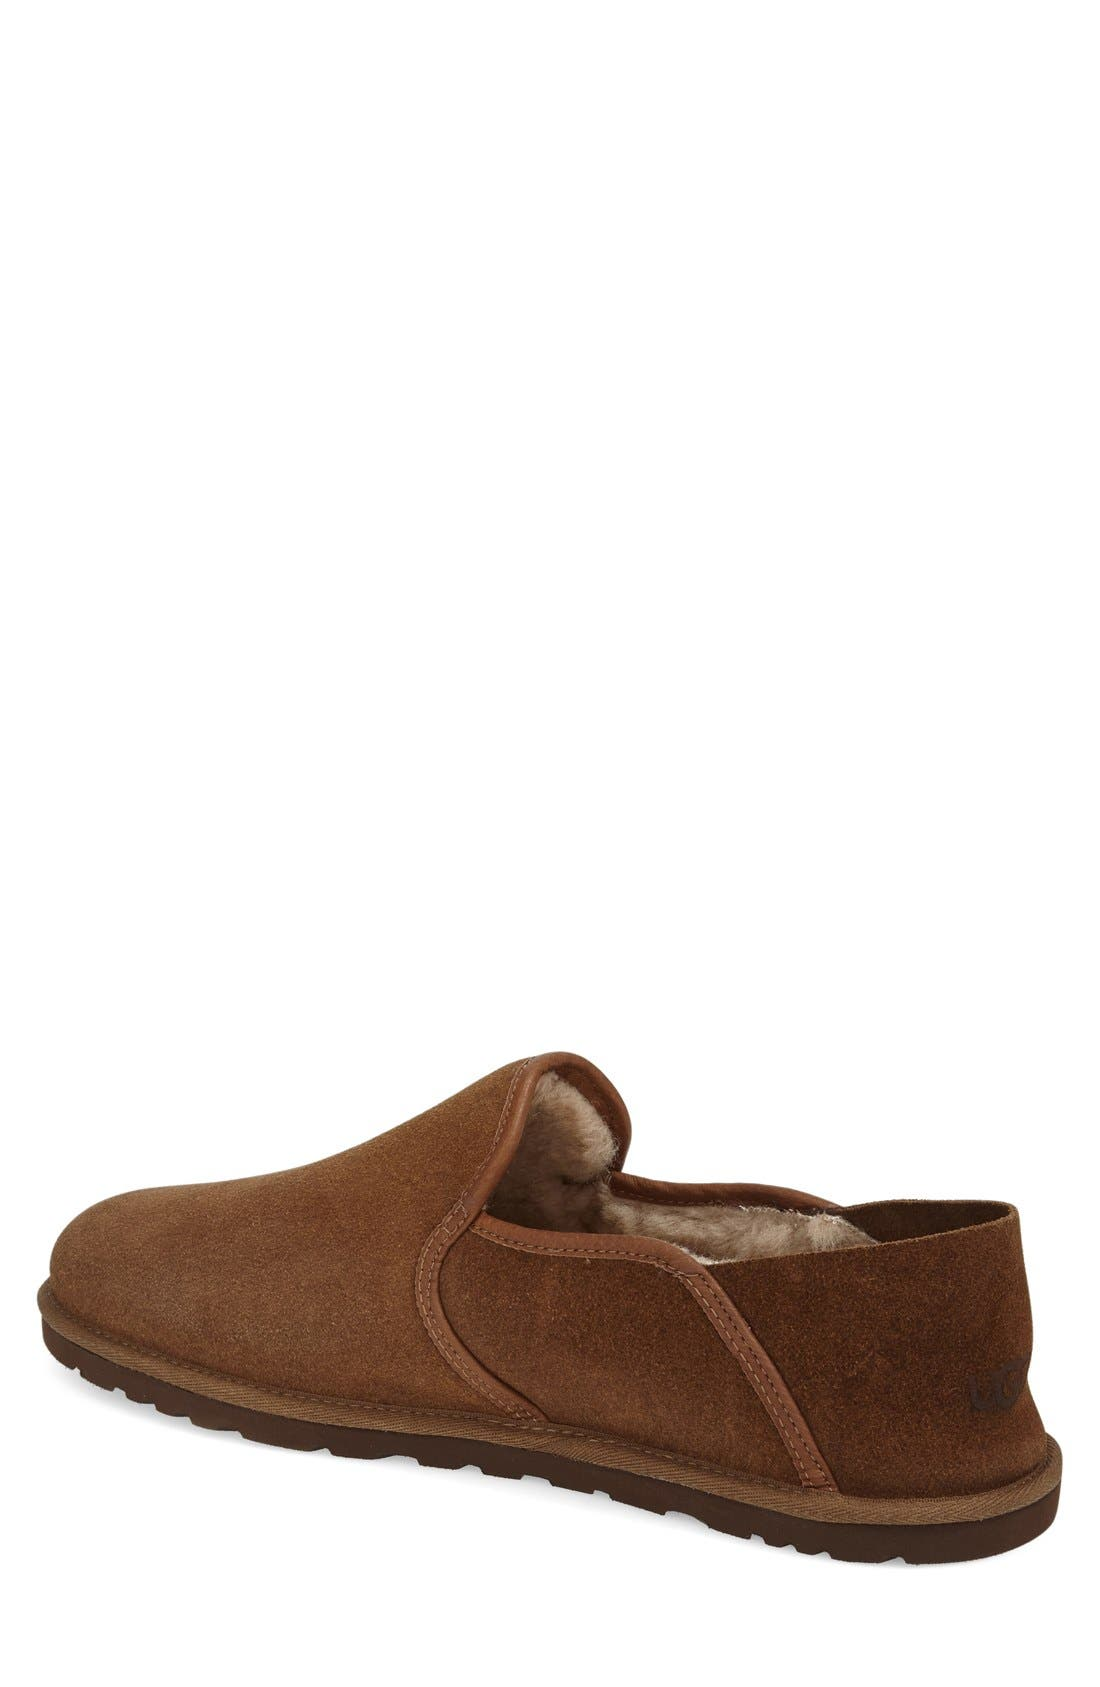 Alternate Image 2  - UGG® Cooke Slipper (Men)